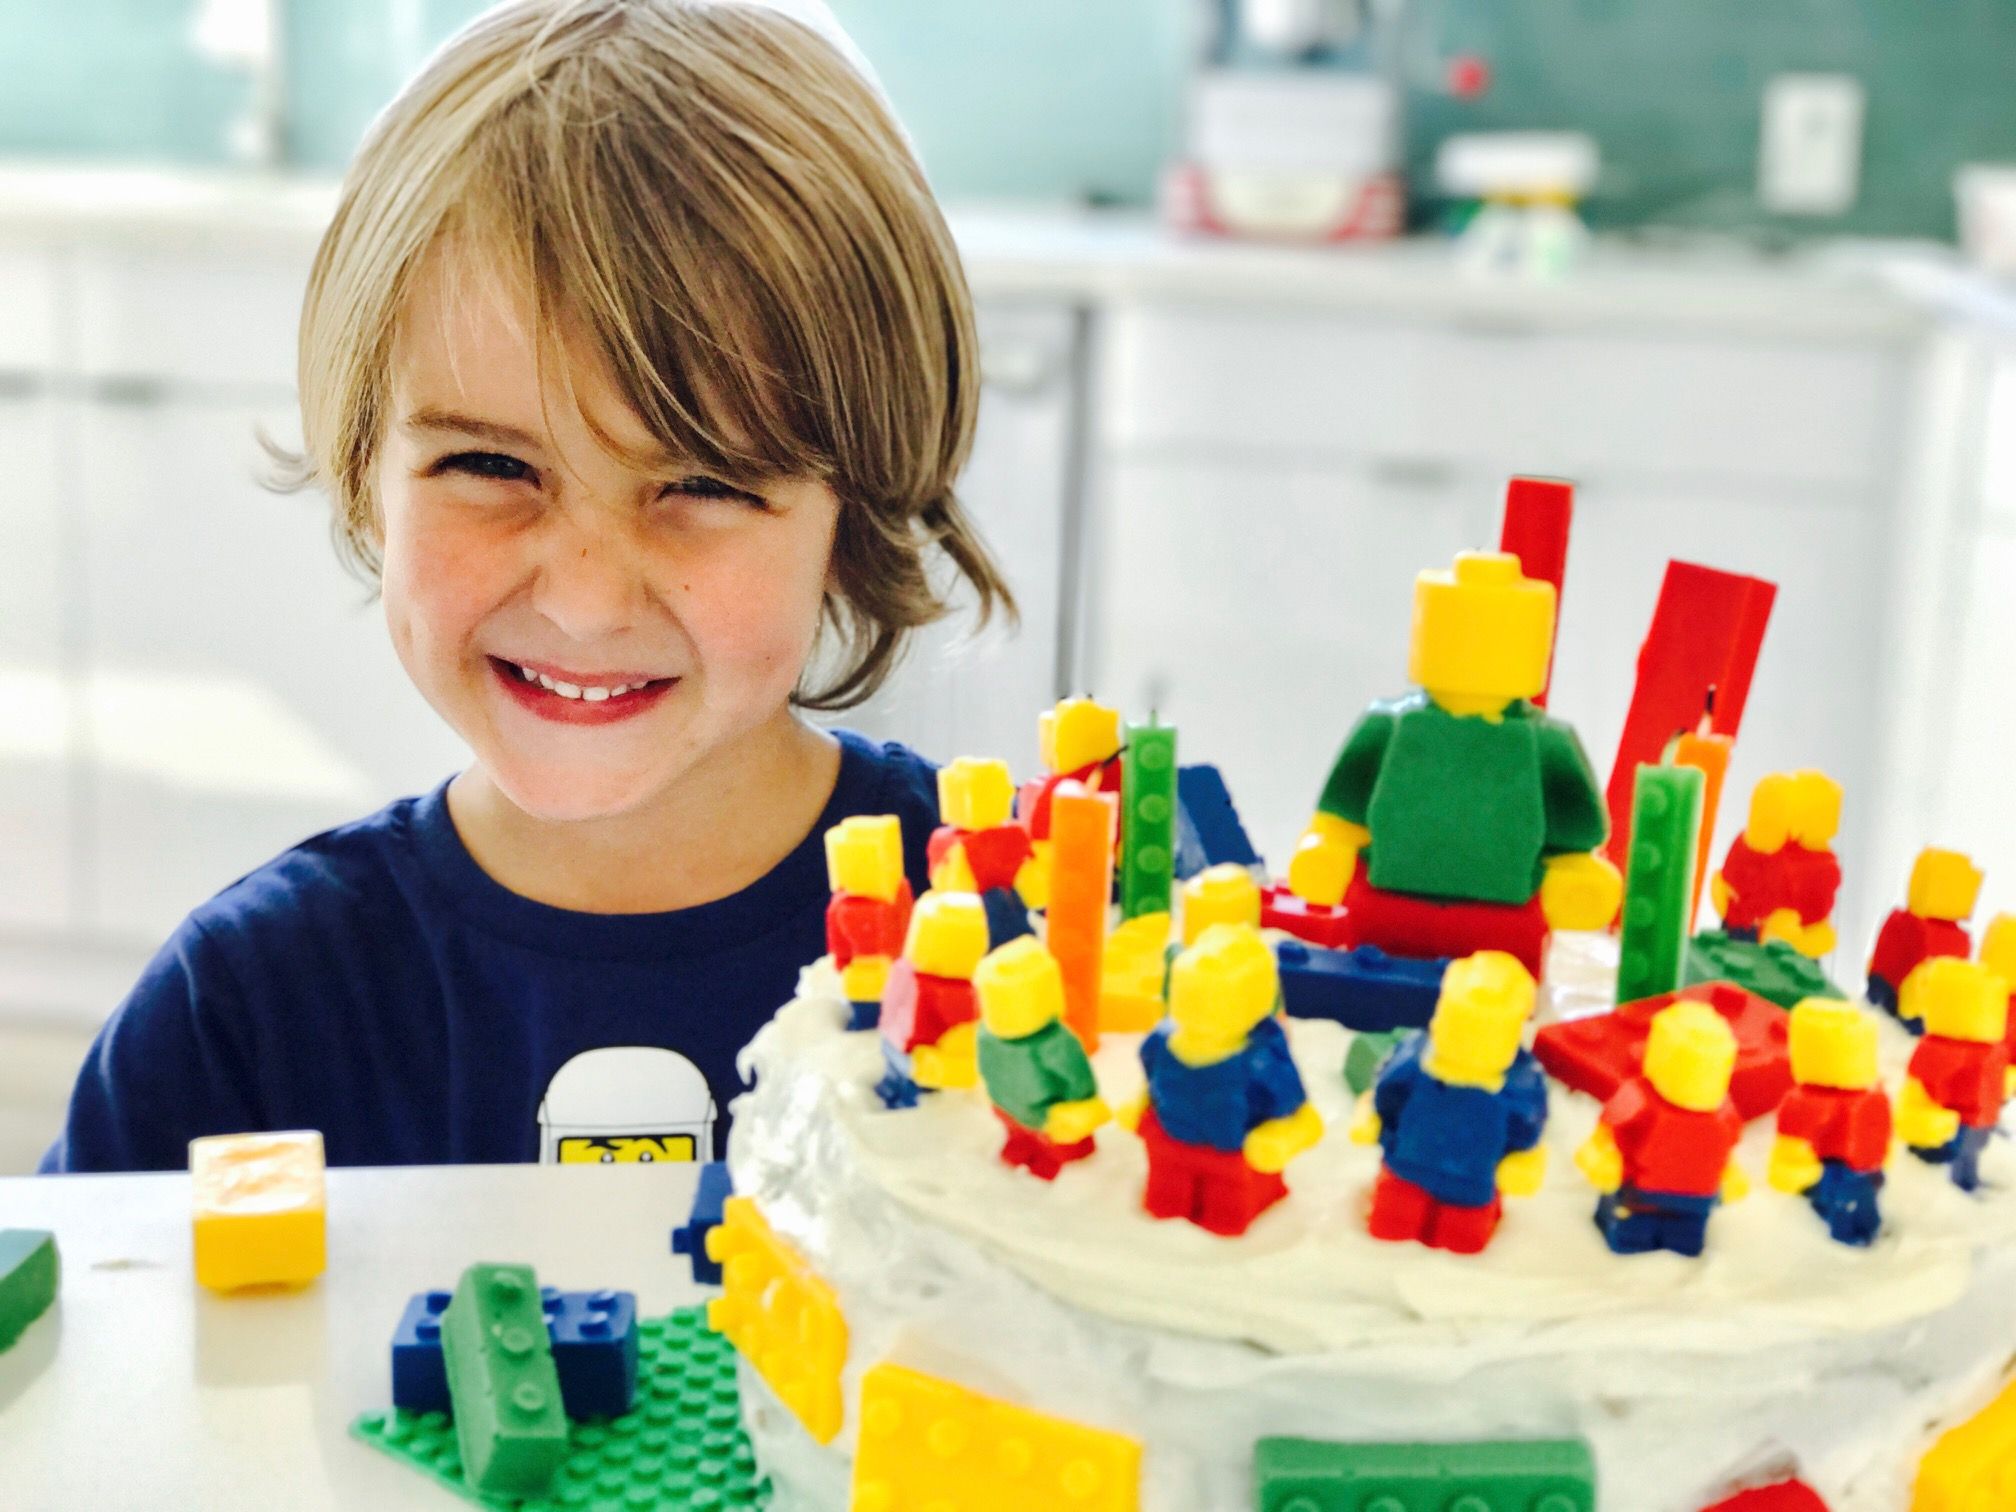 Nothing could have made me happier than seeing my now 5-YEAR-OLD get so excited for his LEGO birthday cake!